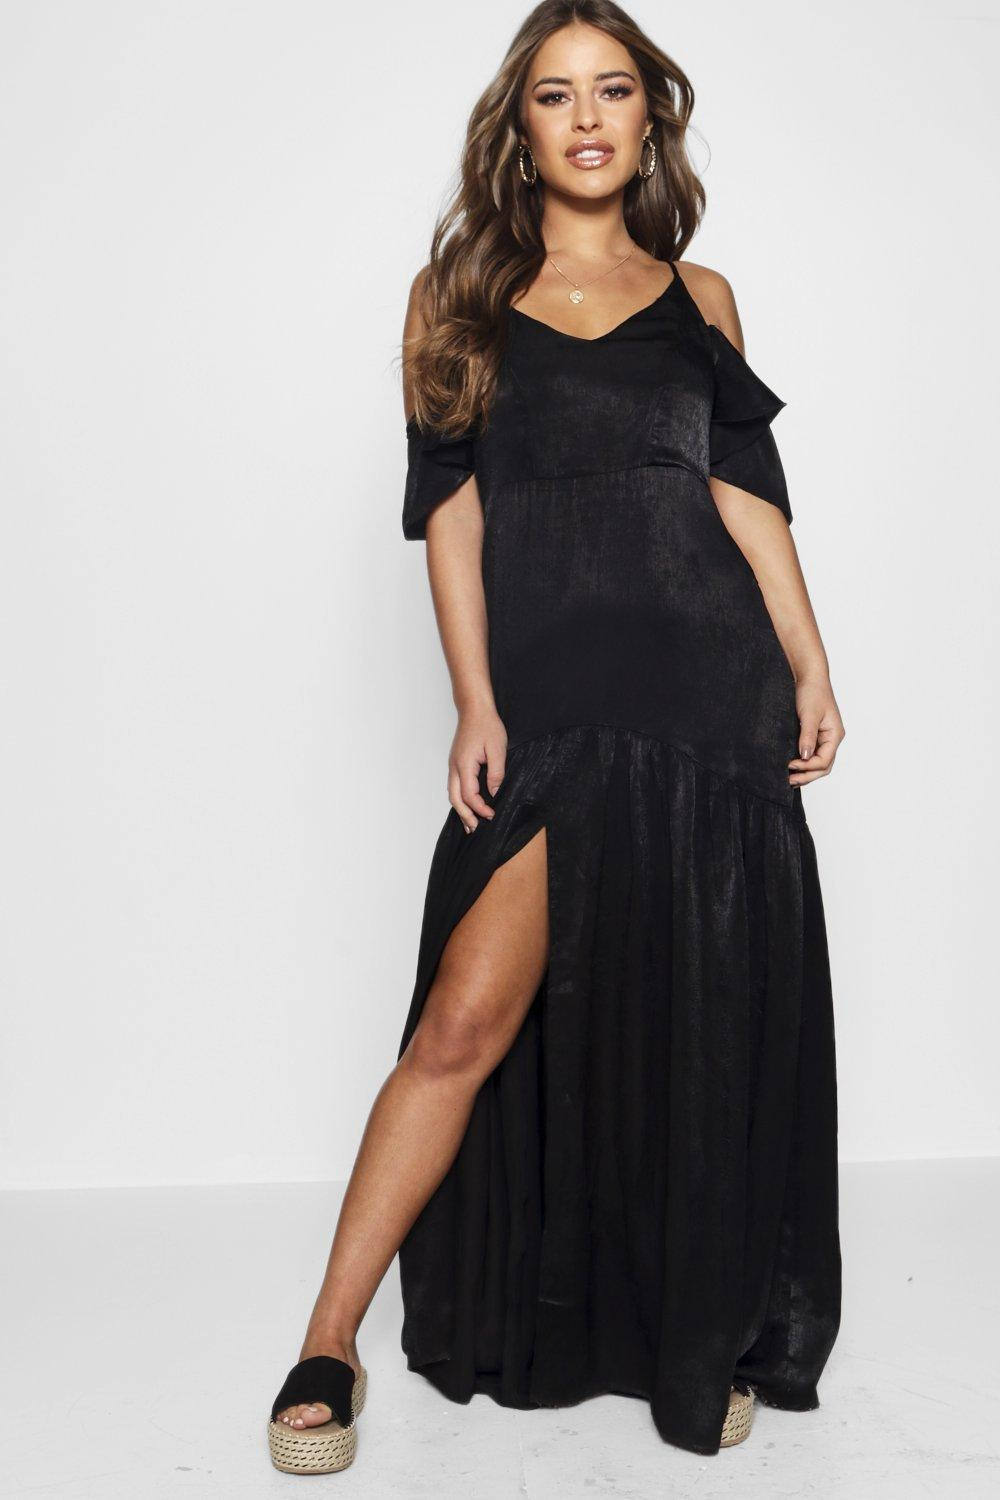 NEW-Boohoo-Womens-Petite-Satin-Cold-Shoulder-Split-Maxi-Dress-in-Polyester